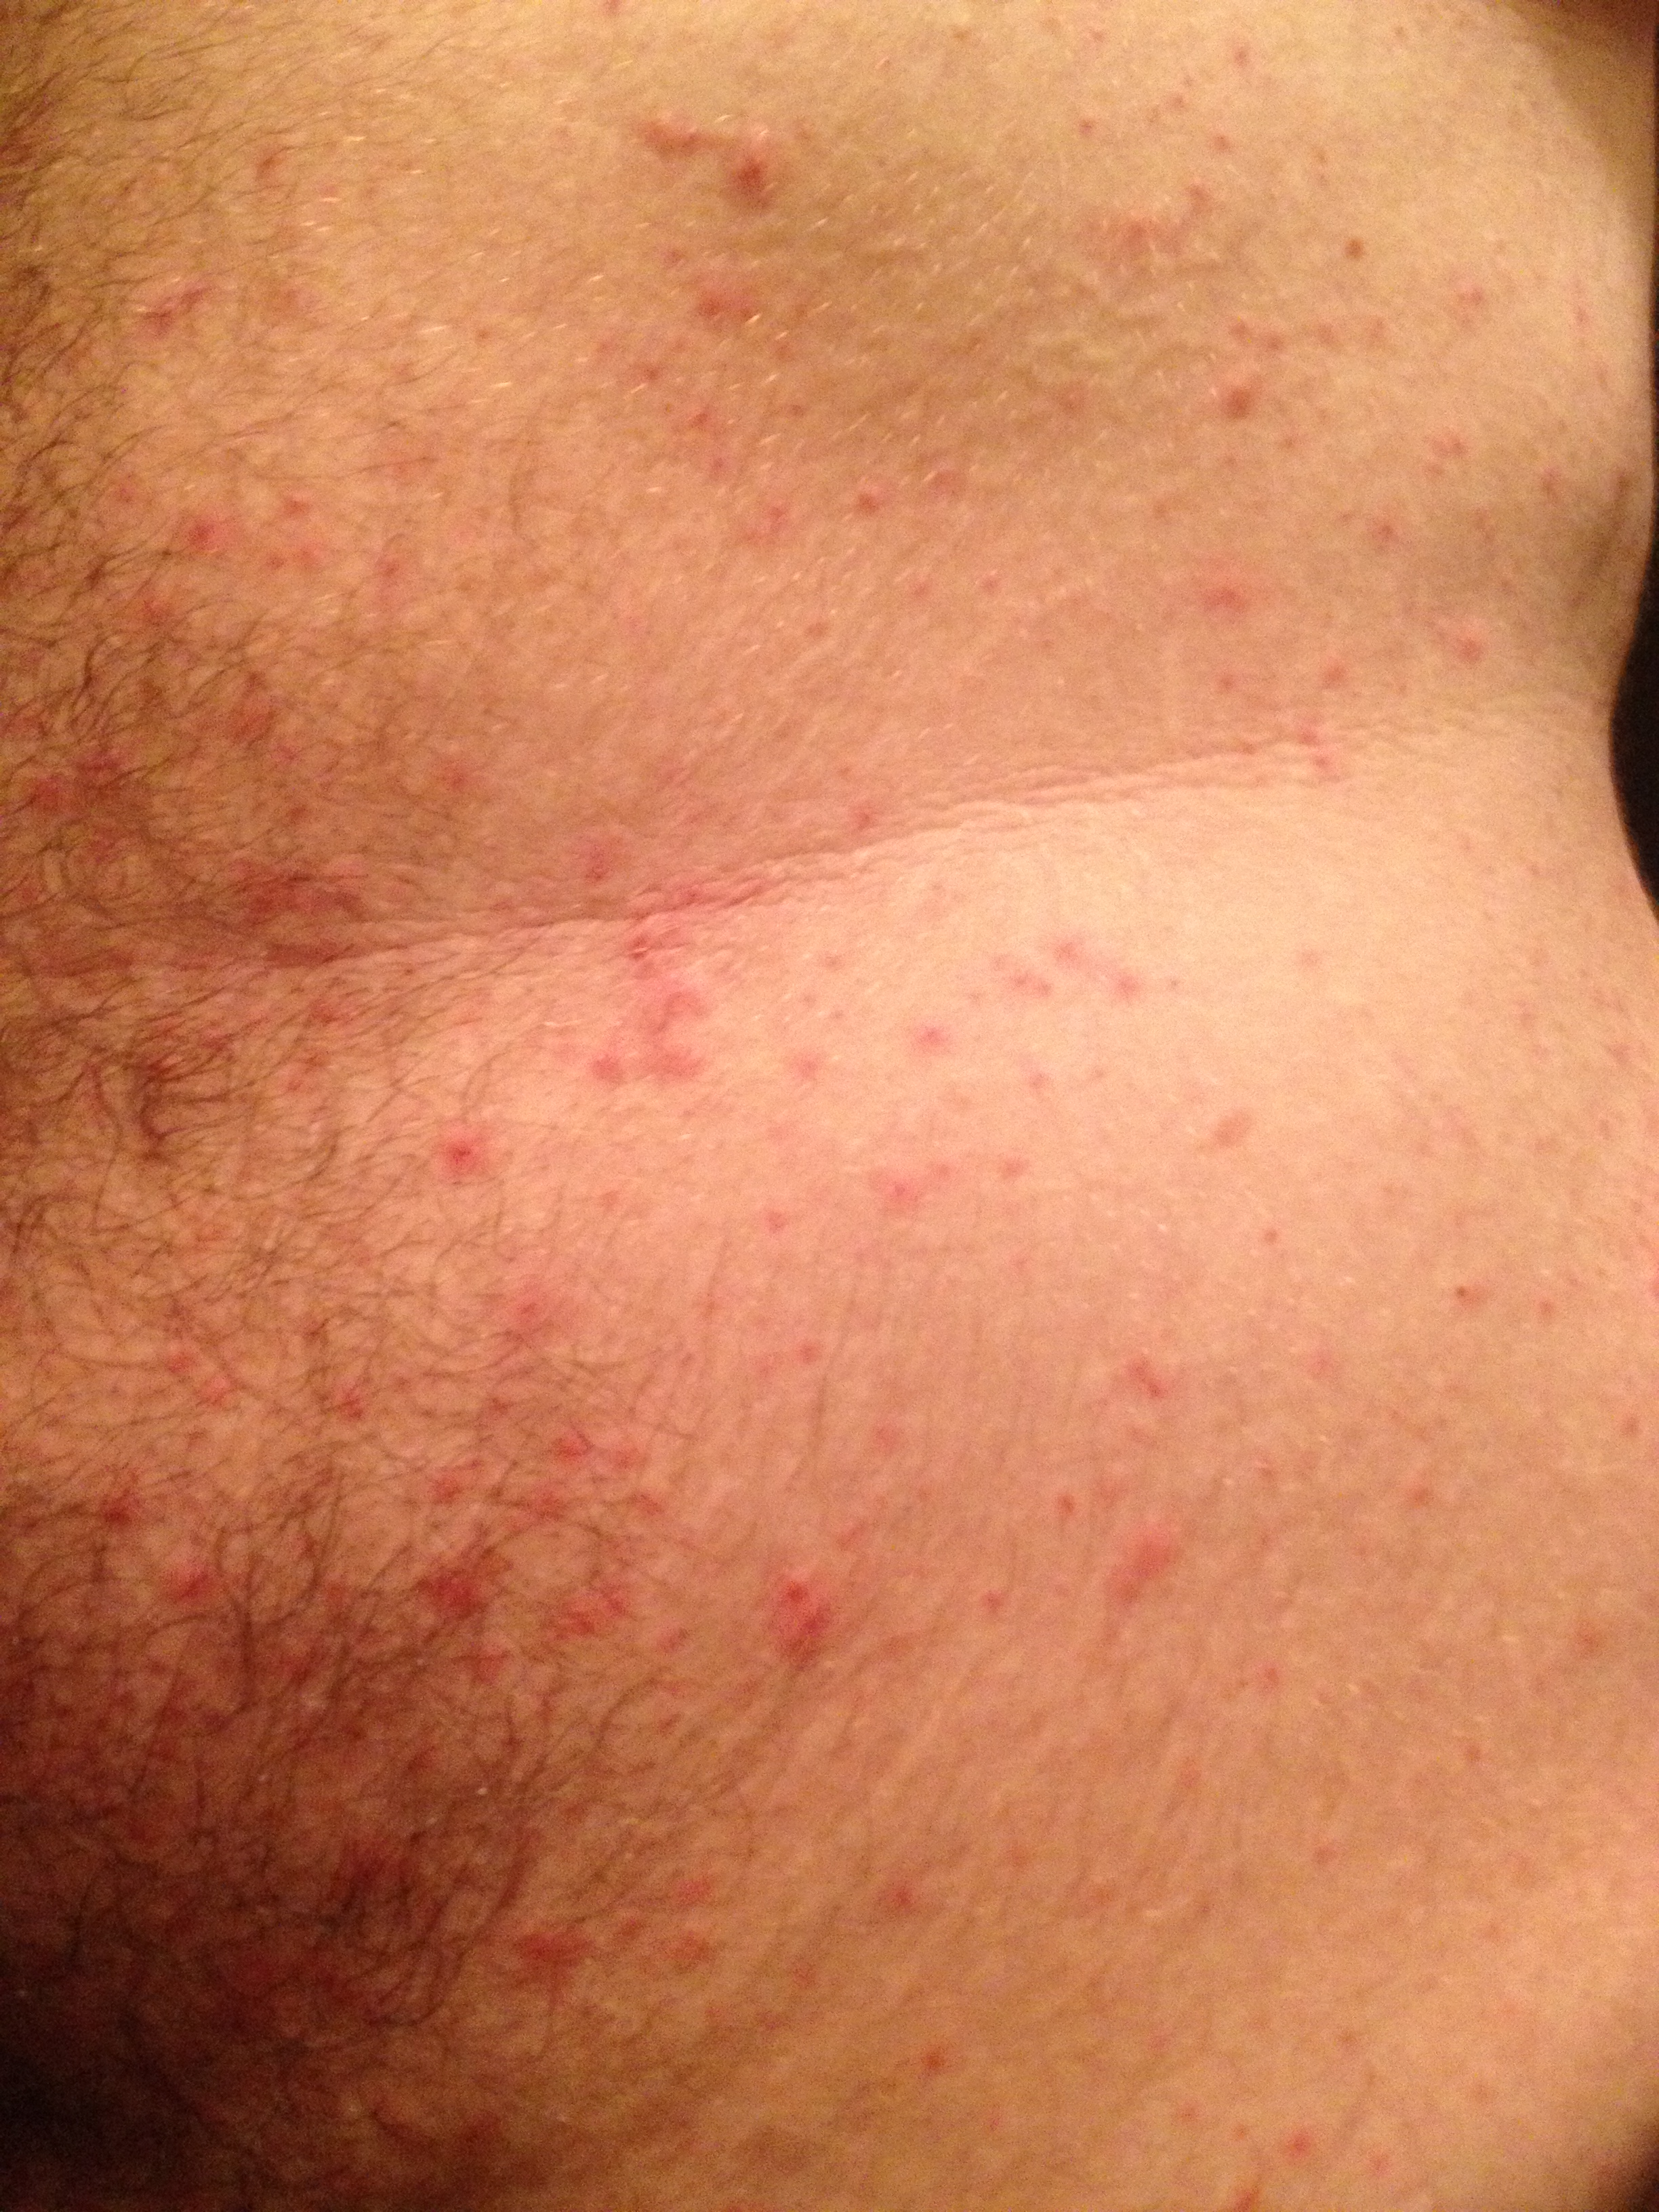 red bumps on arms stomach - MedHelp